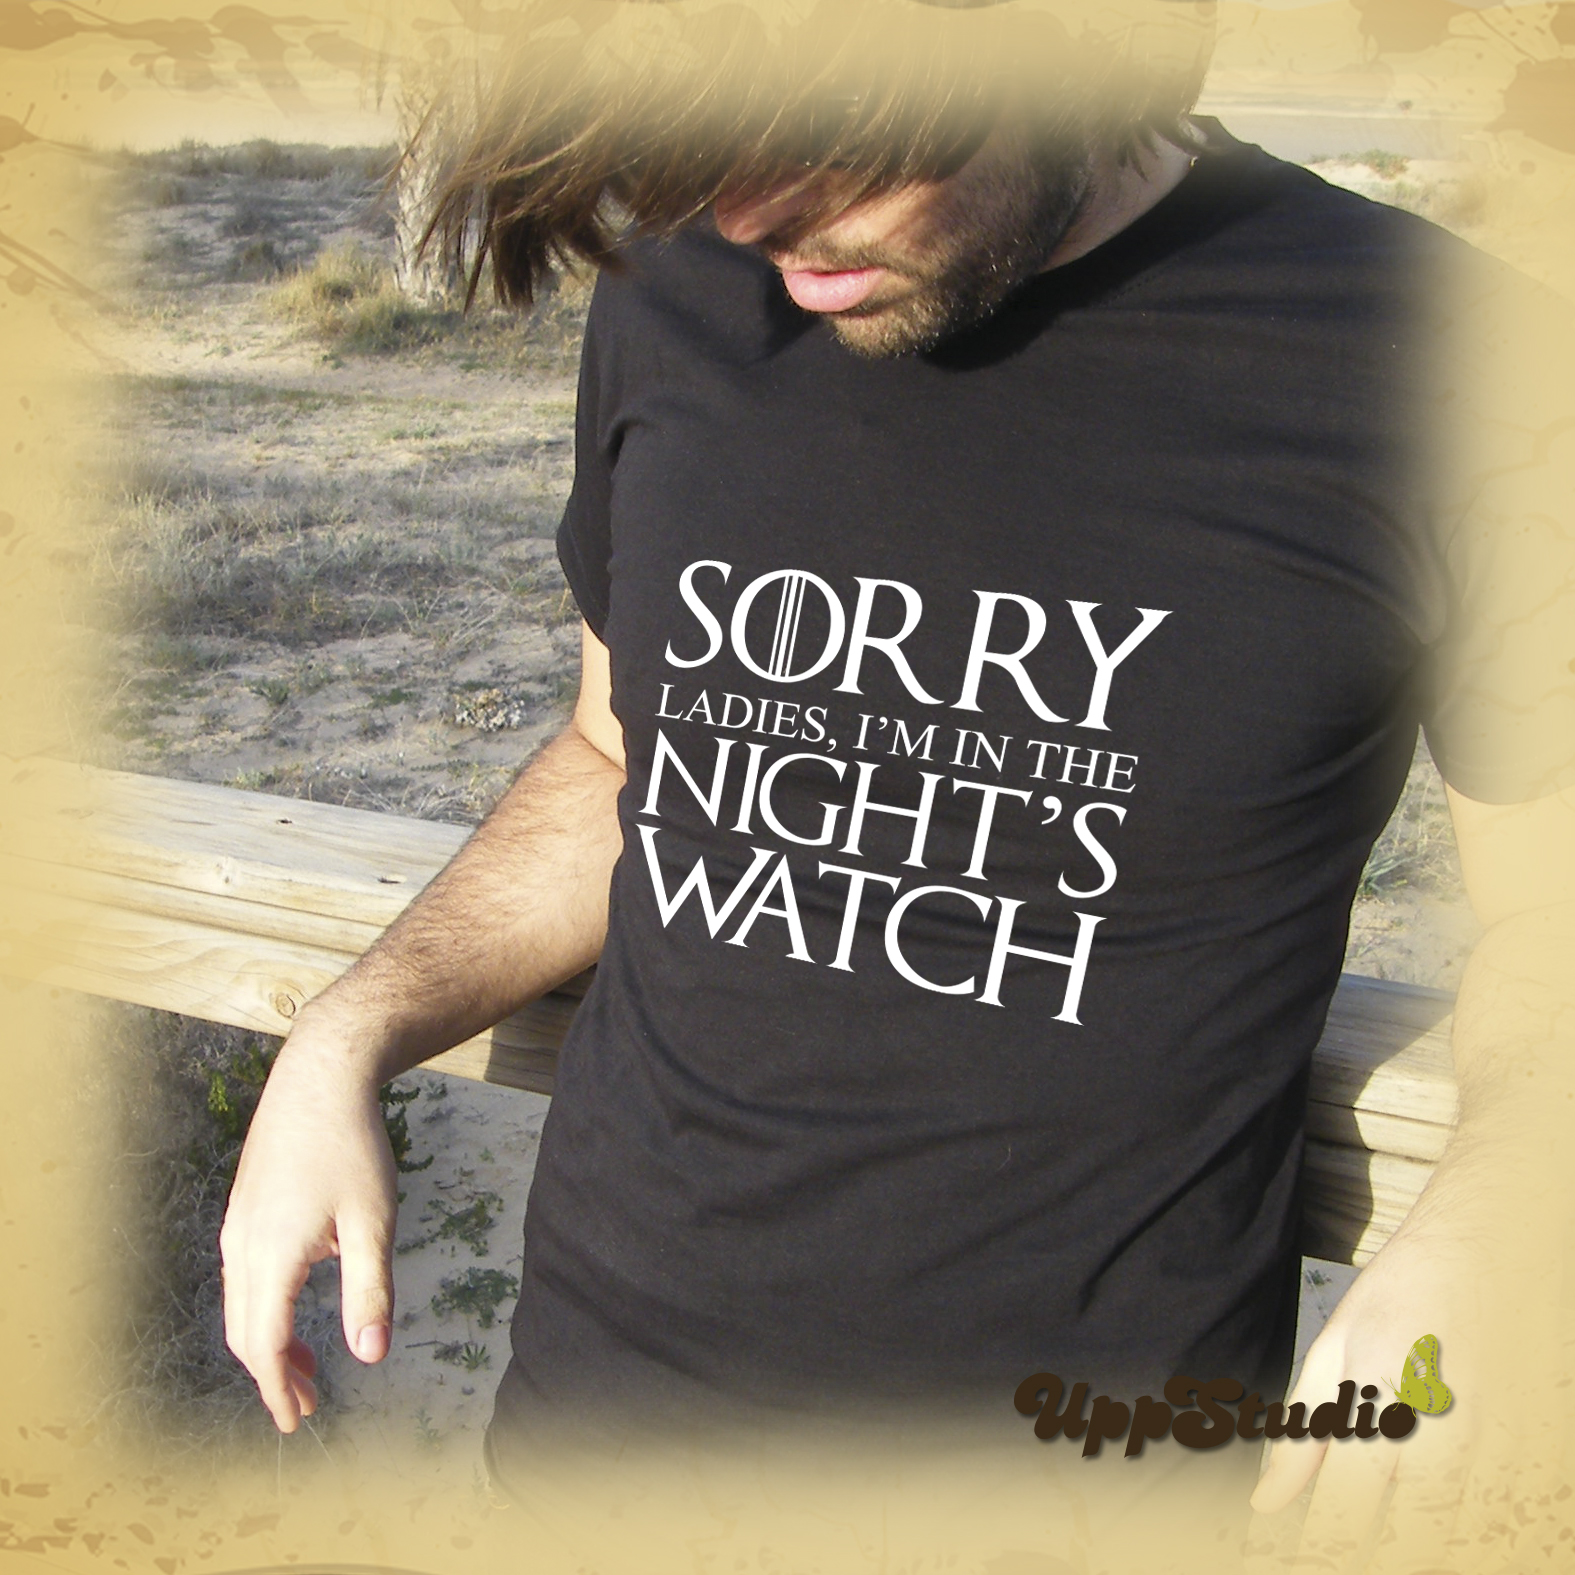 http://www.uppstudio.com/Camiseta-Sorry-Ladies-Im-In-The-Nights-Watch